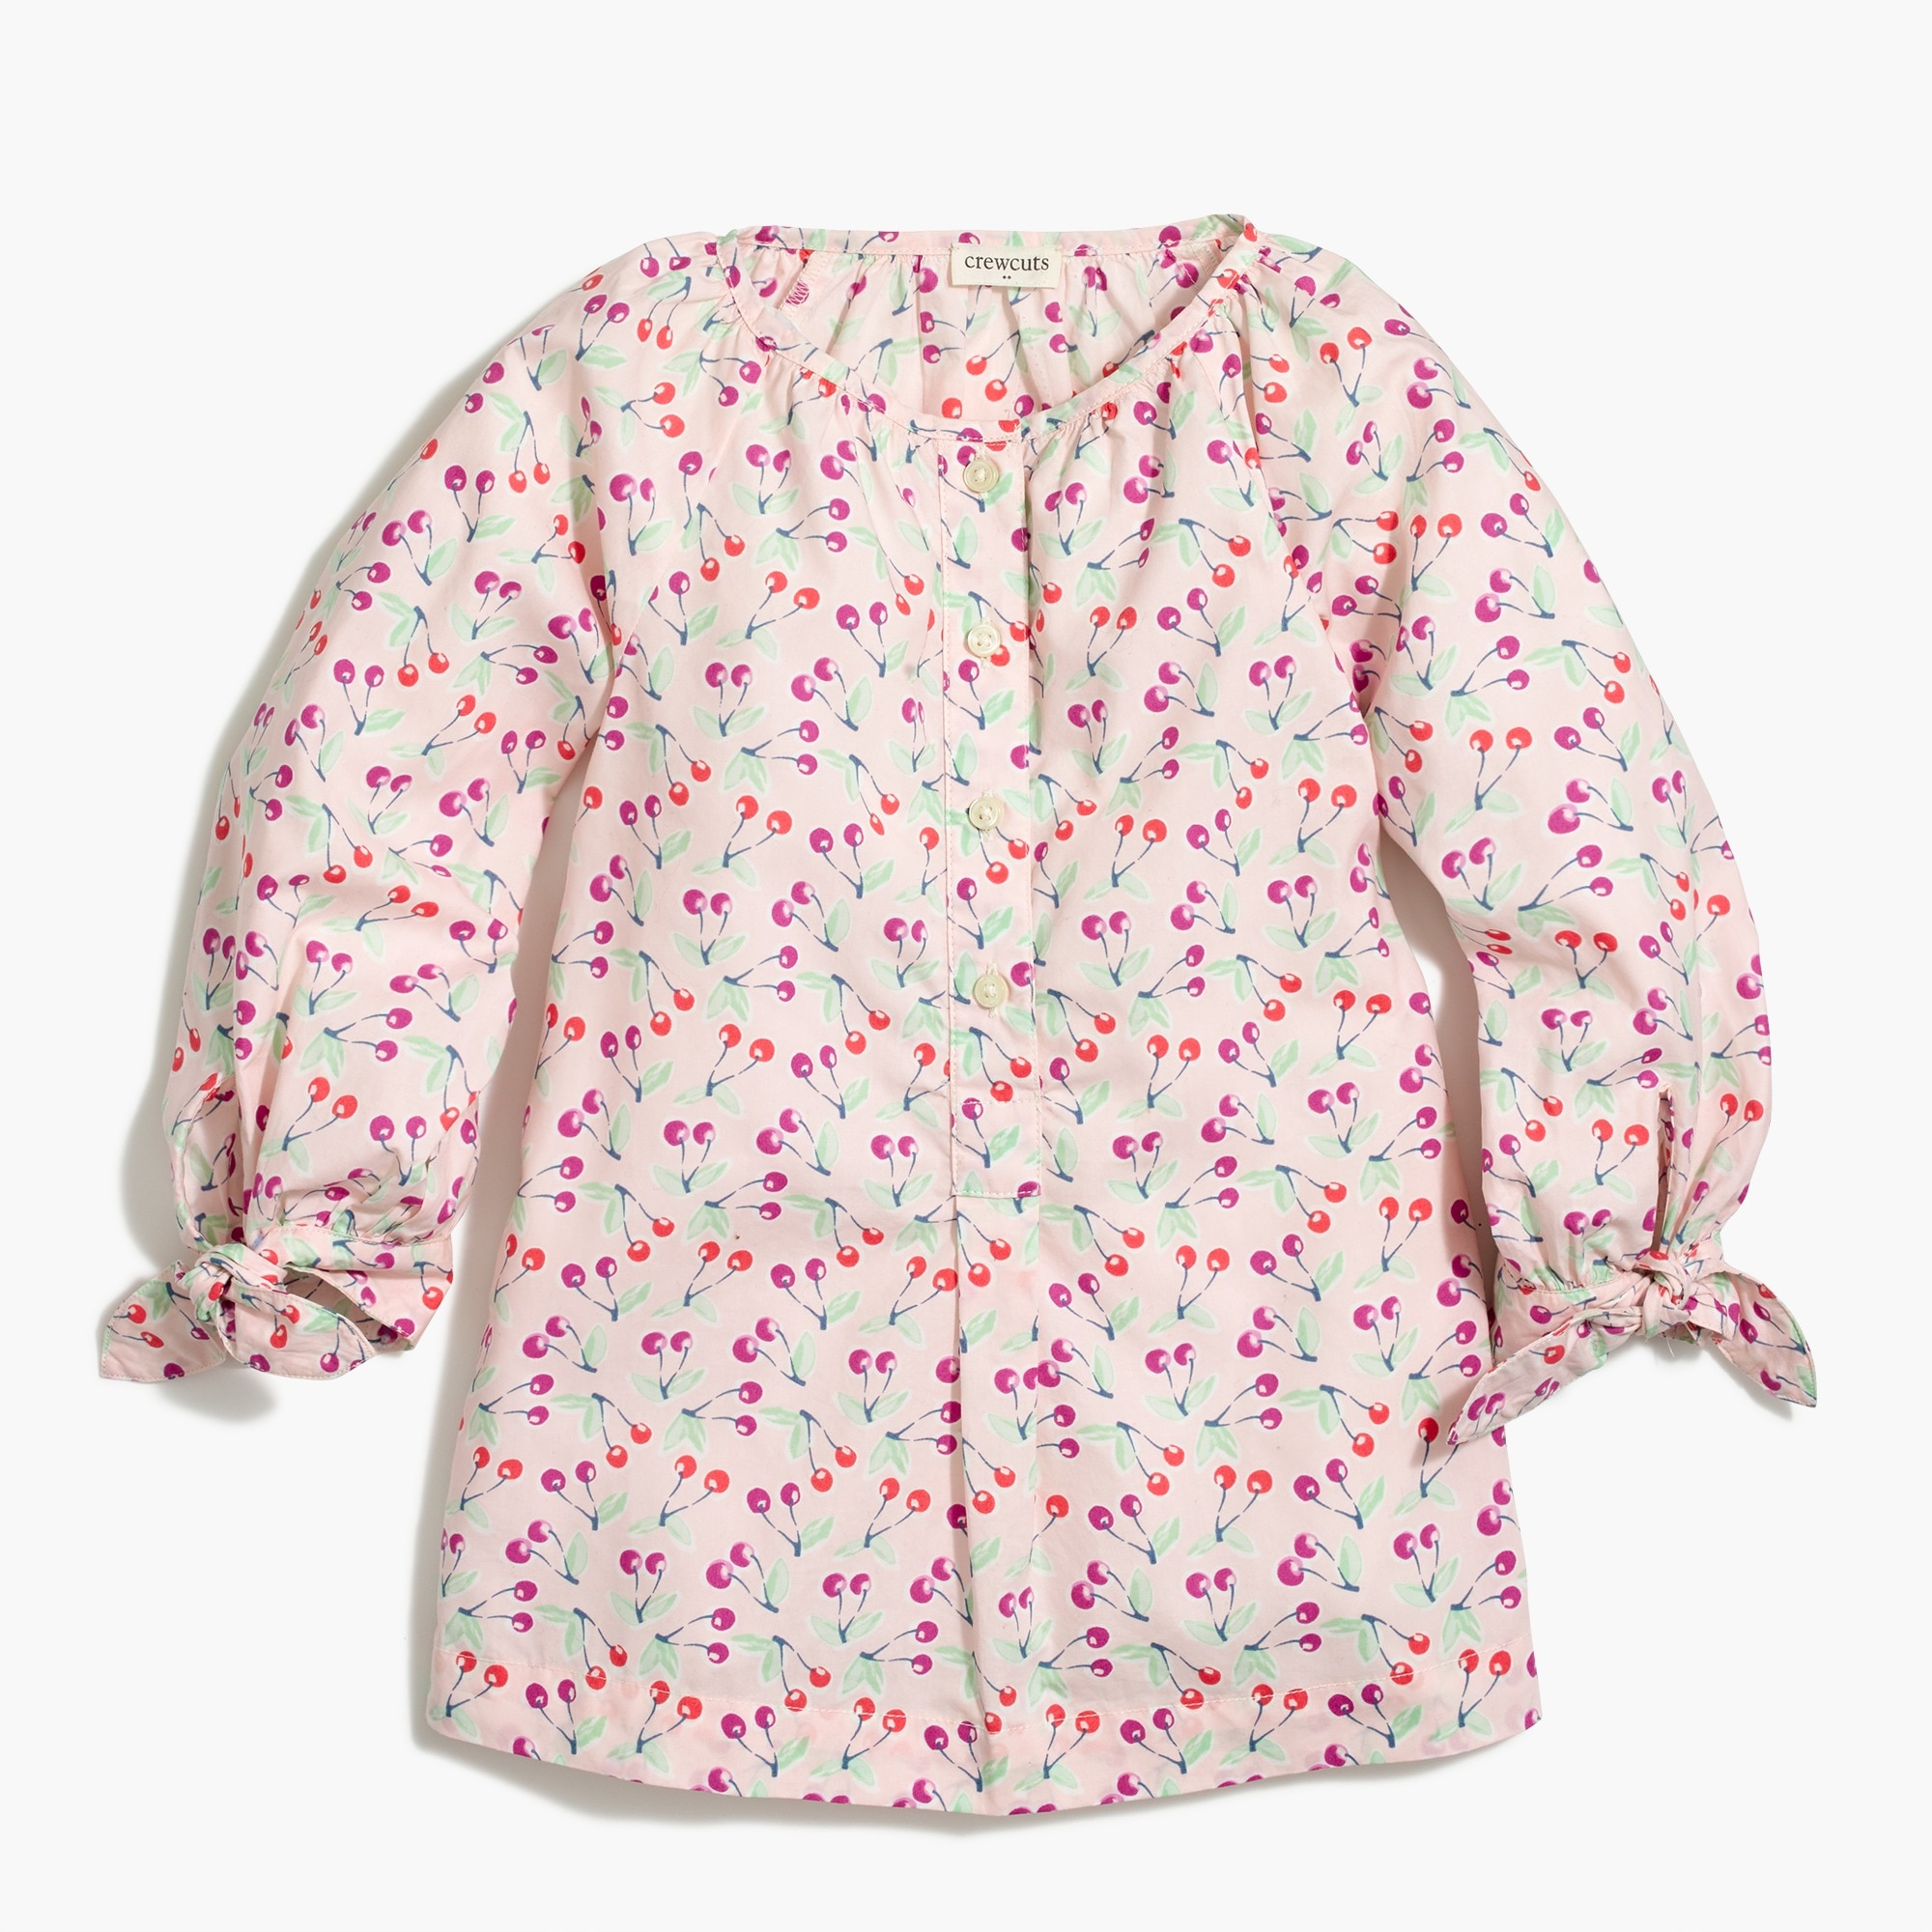 factory girls Girls' tie-sleeve top in cherry print